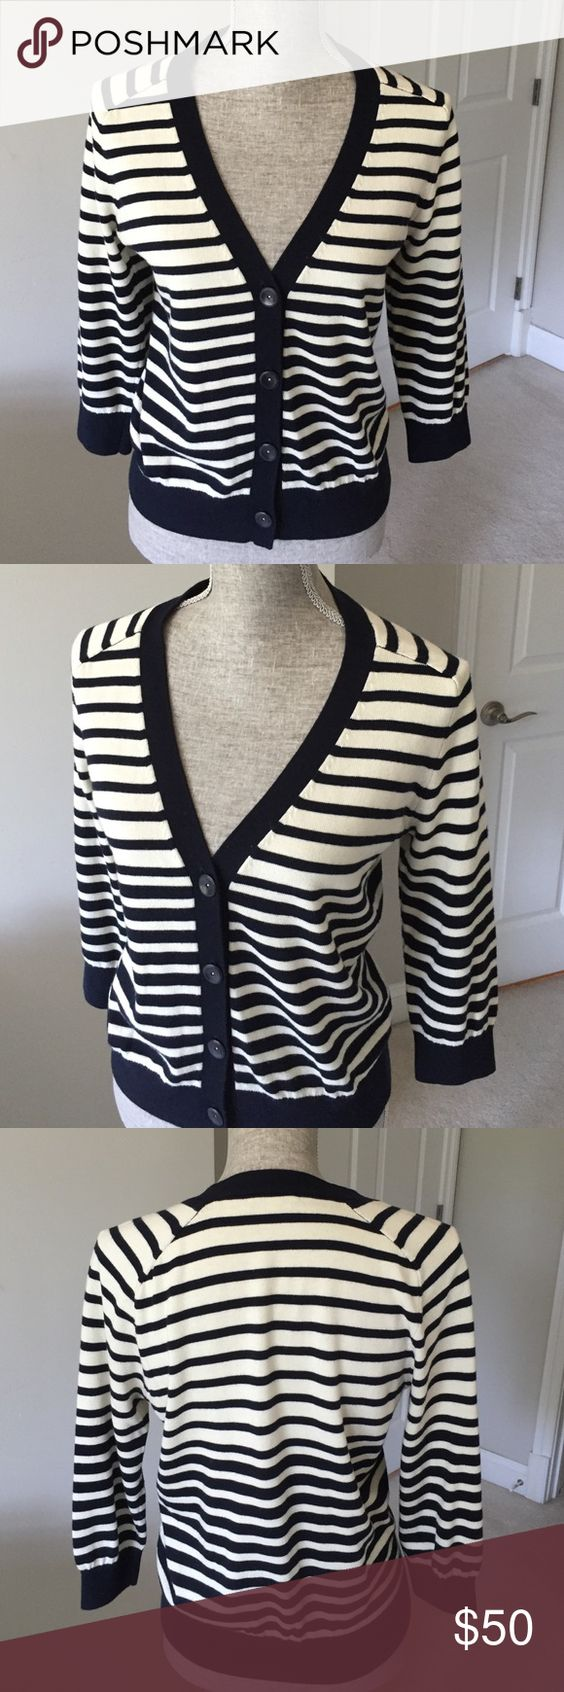 Vince cashmere blend navy/cream striped cardigan | Tops, Cream and ...